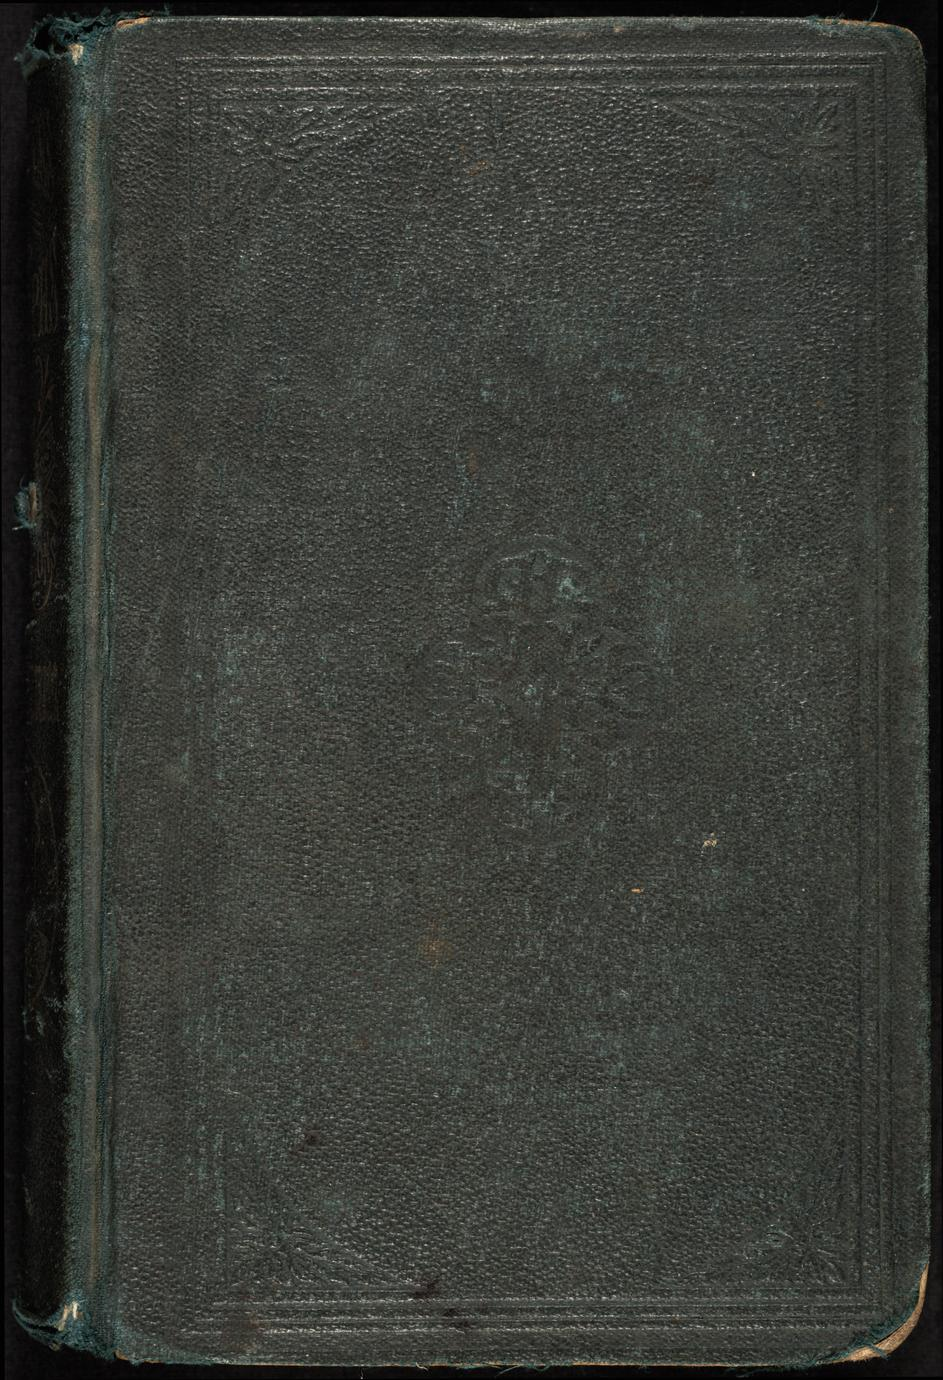 Struggles and triumphs ; or, Forty years' recollections of P. T. Barnum written by himself (1 of 2)